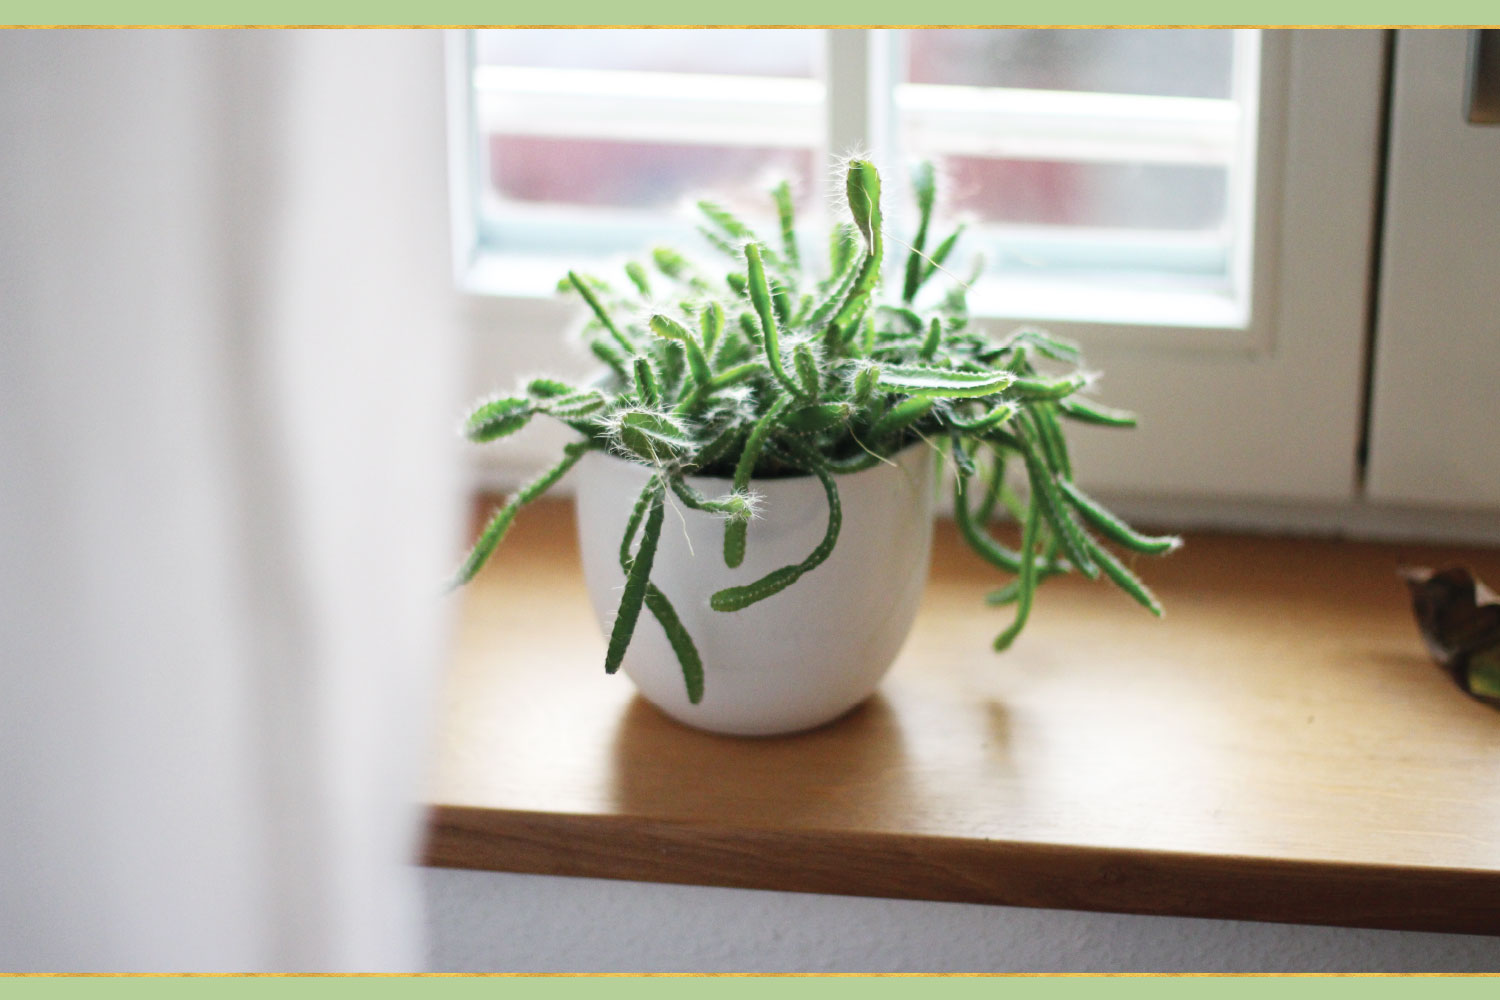 potted green plant by window